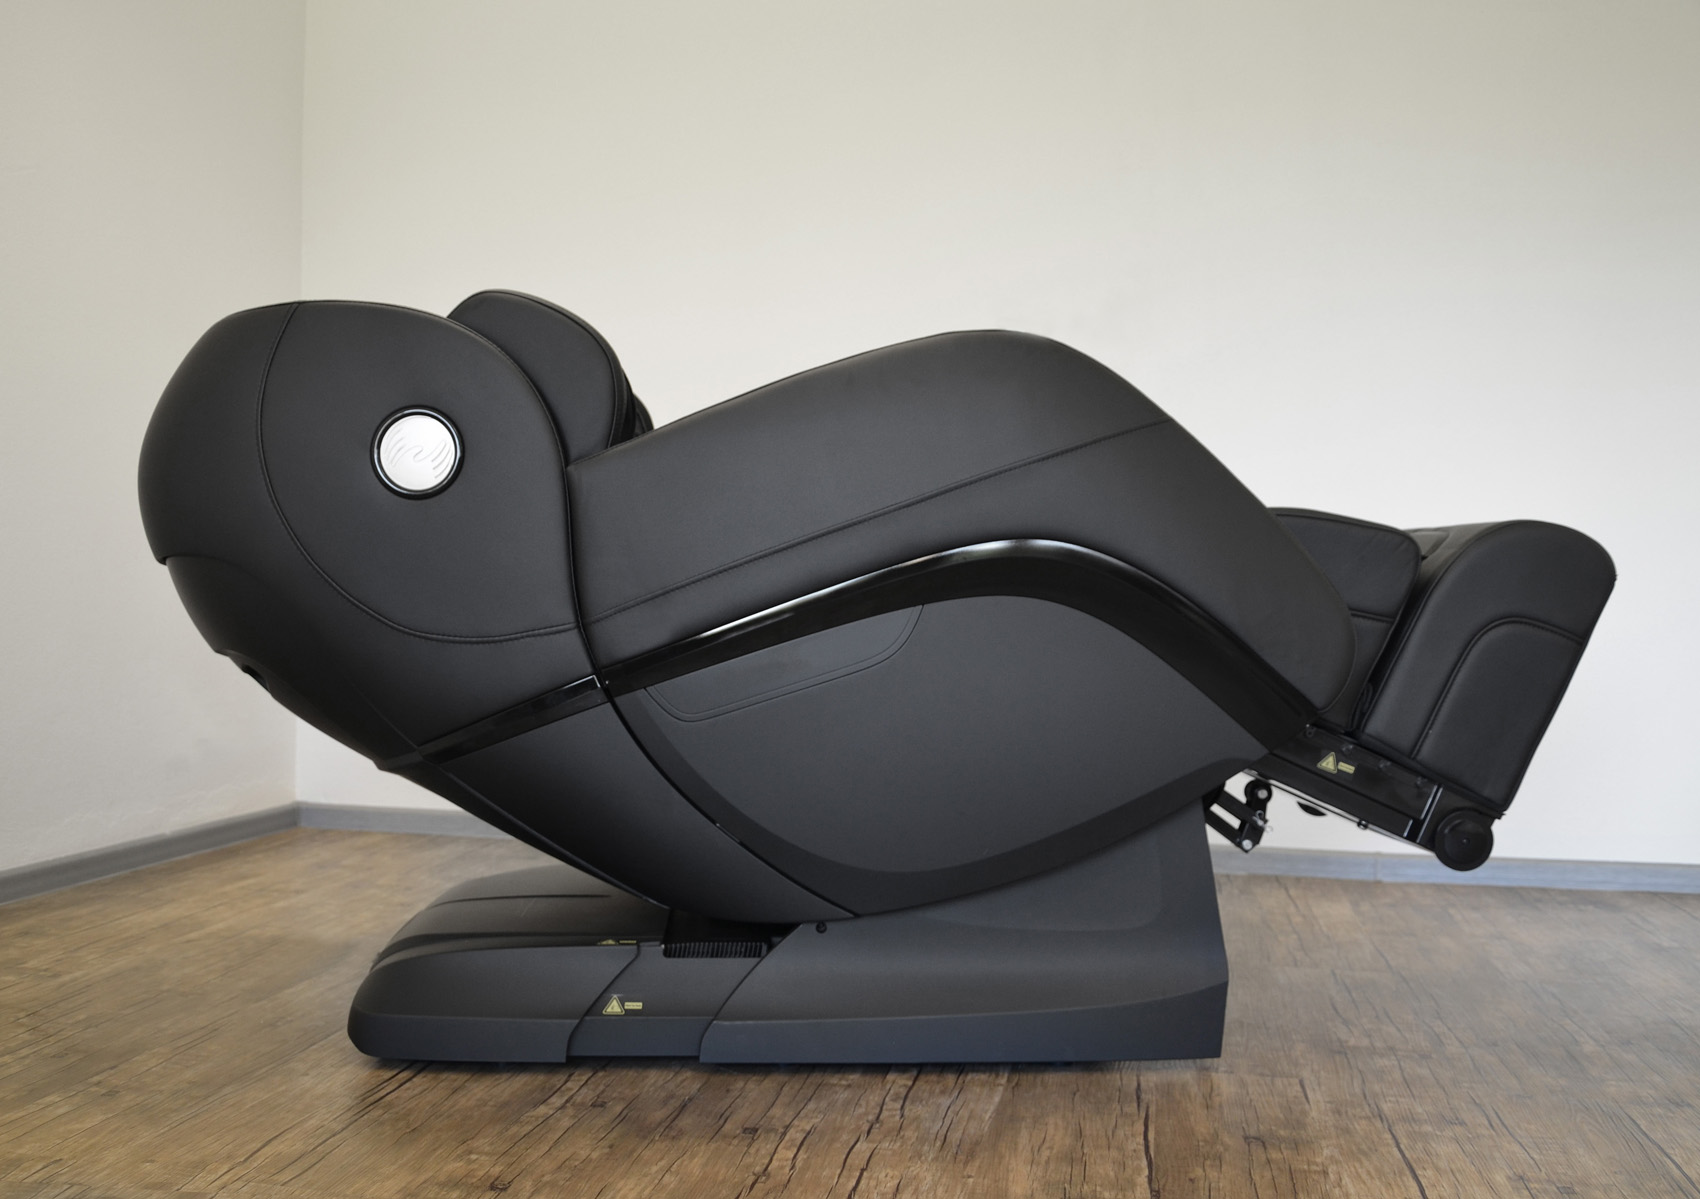 Luxus sessel  Massage-Sessel MD-A890 | MADdiamond